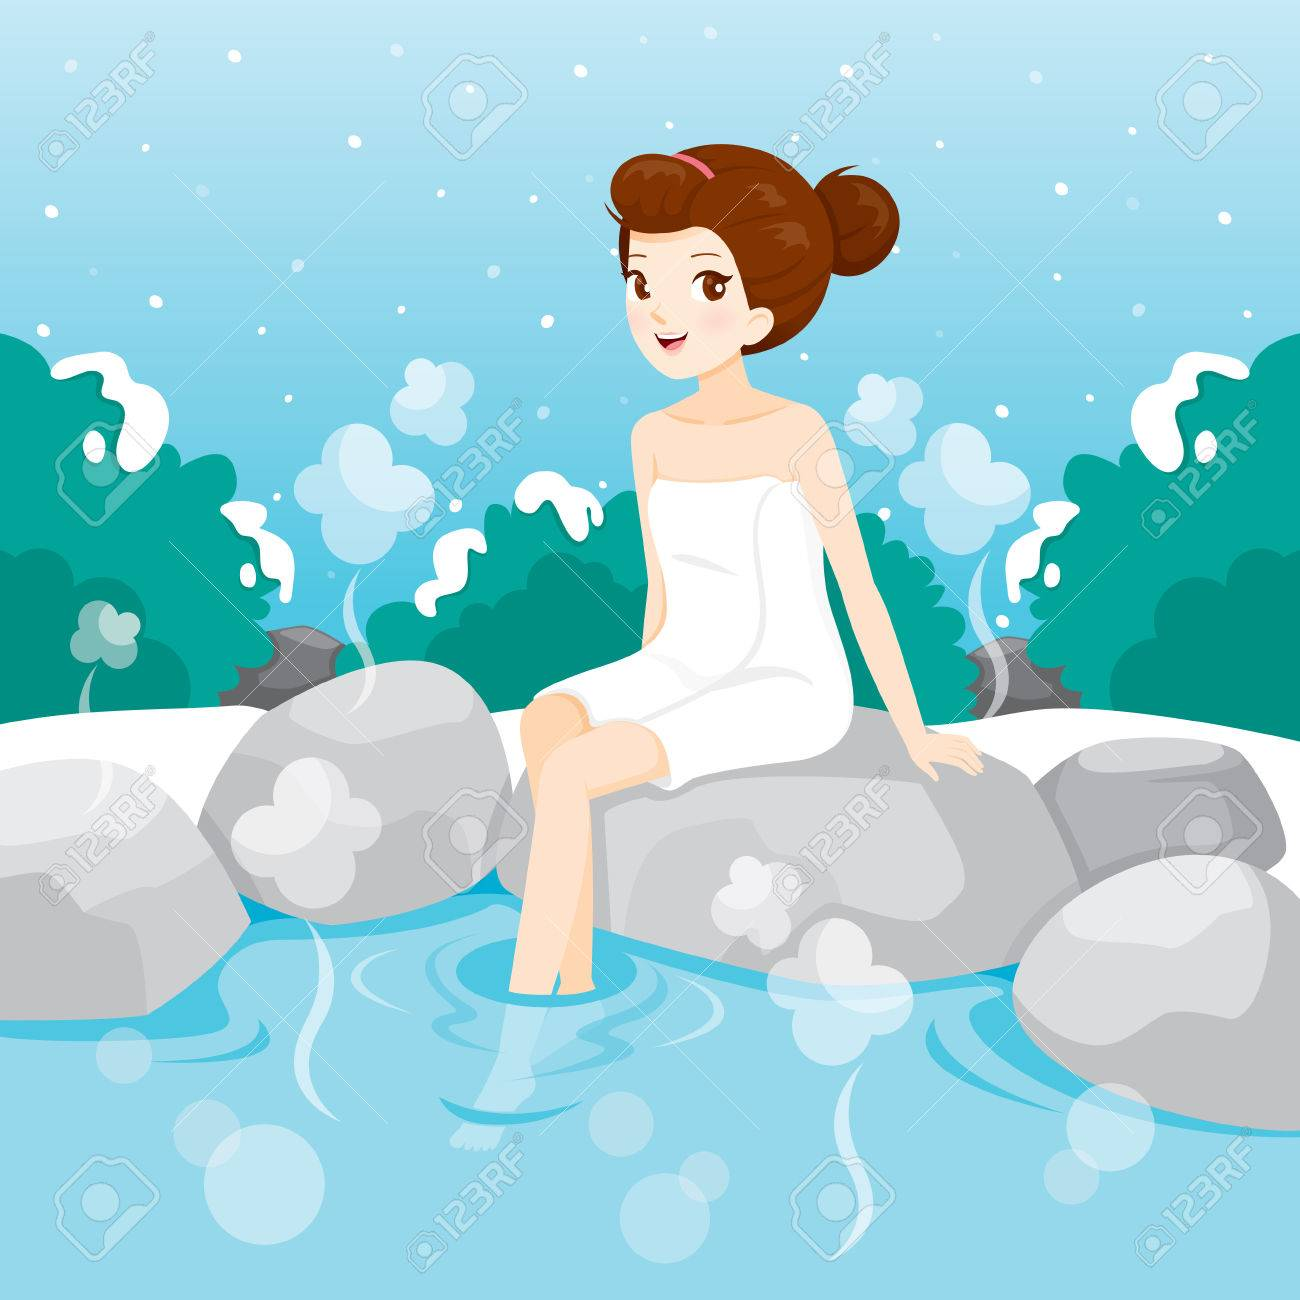 Woman Relaxing In Hot Spring, Bath, Onsen, Japanese, Culture ...